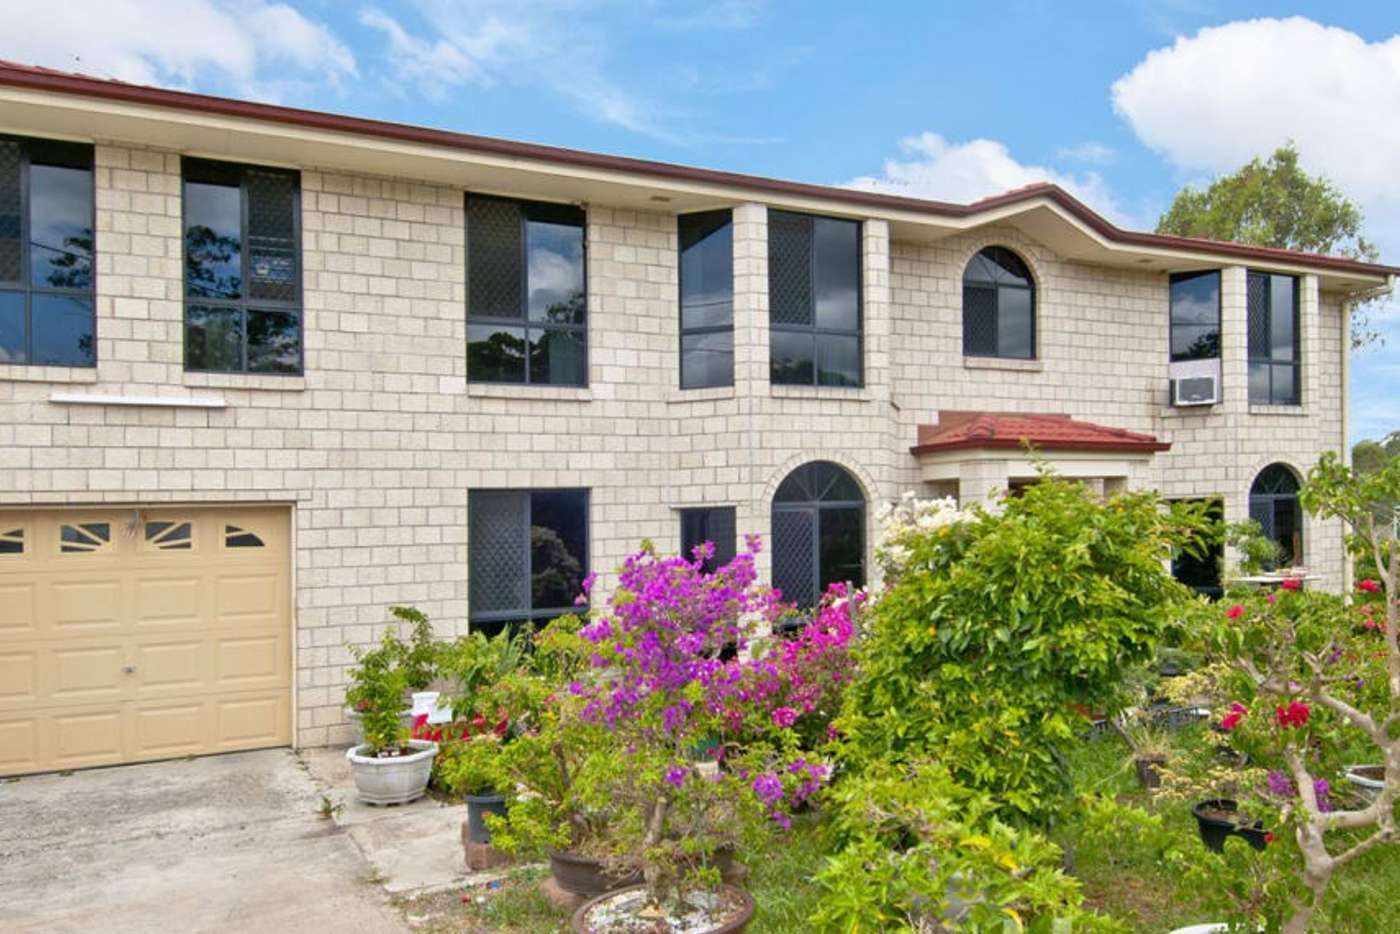 Main view of Homely house listing, 2-6 Presley Court, North Maclean QLD 4280